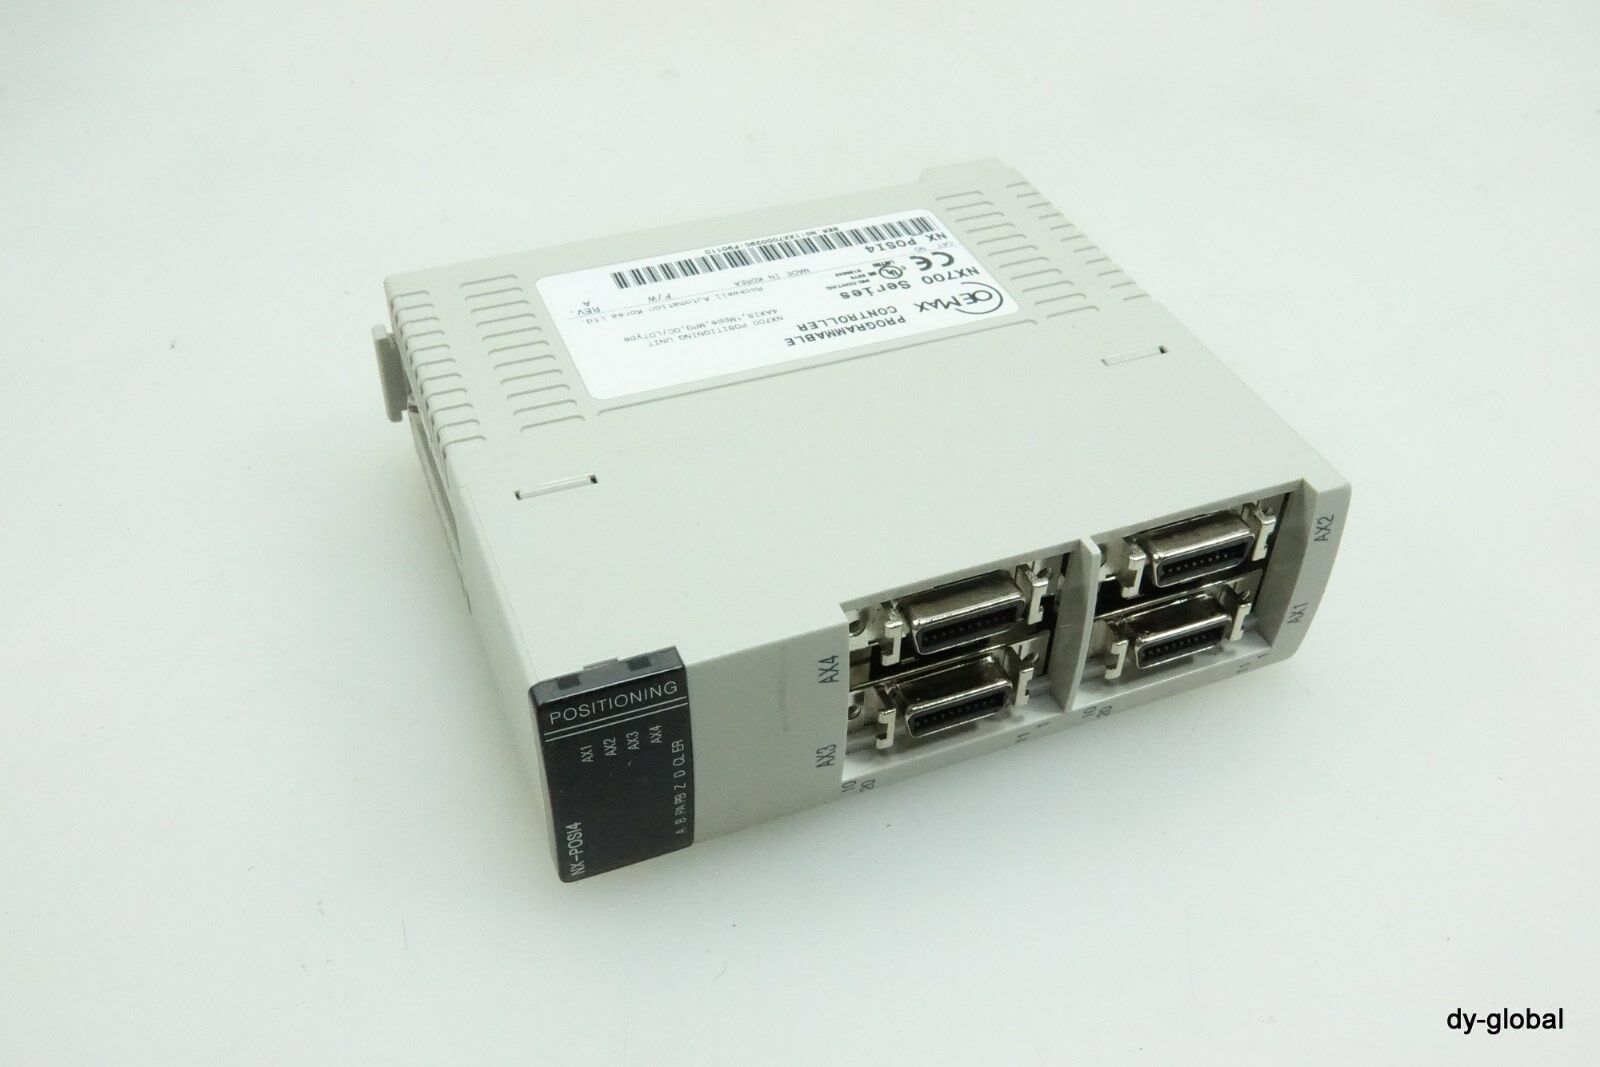 OEMAX Used NX_POSI4 CONTROLLER NX700 4 Axis POSITIONING UNIT PLC-I-536=7C22